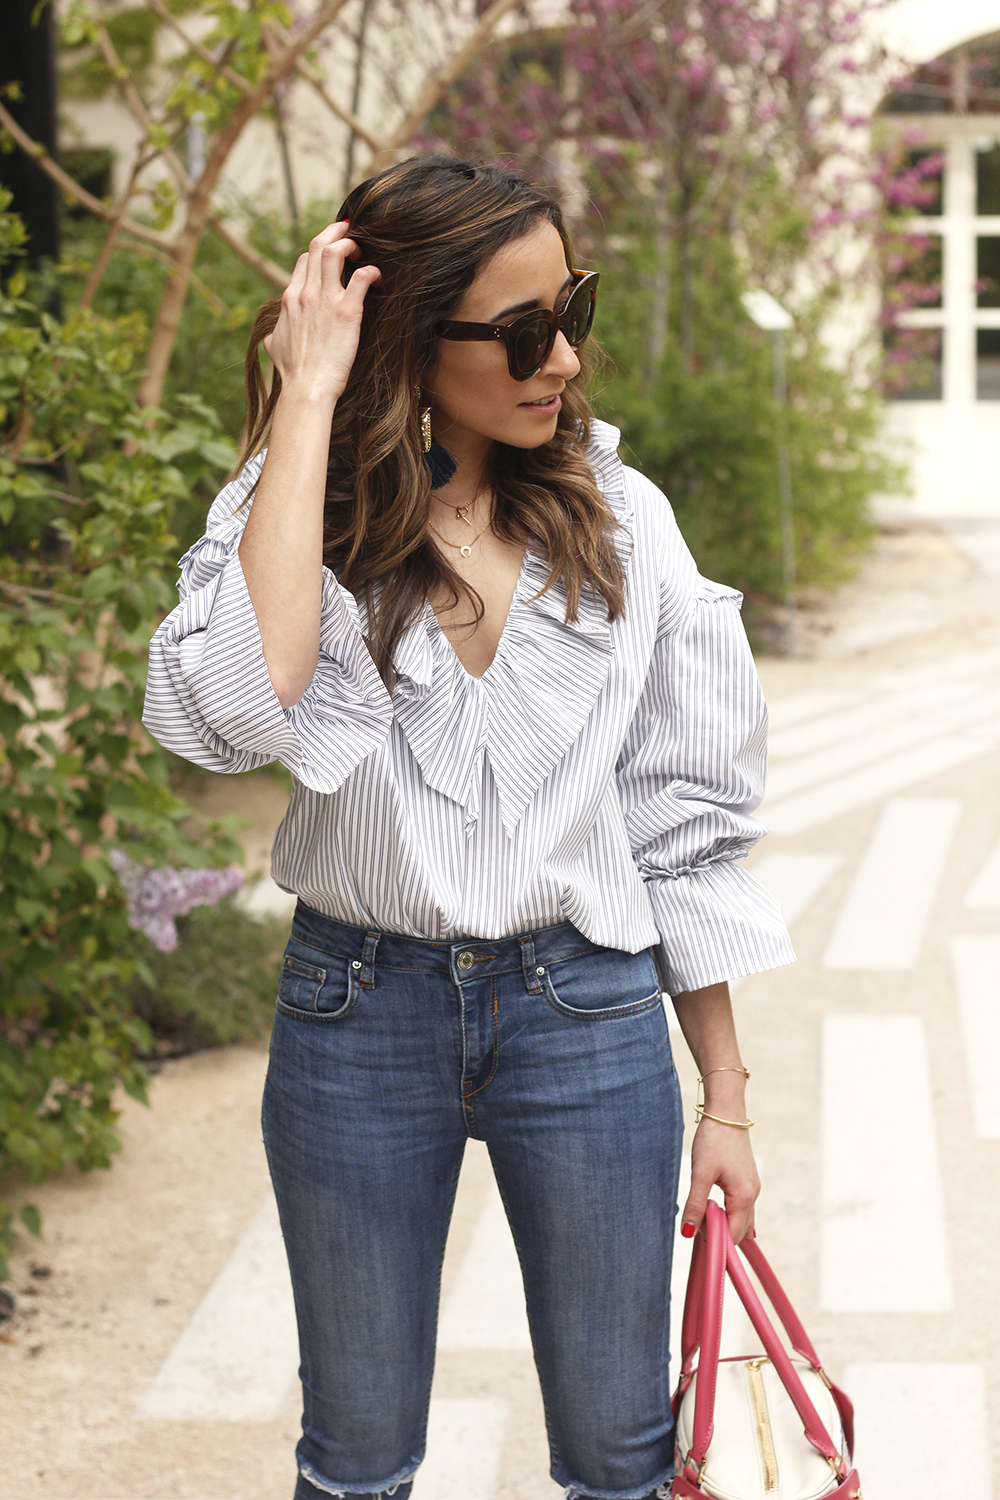 Ruffled striped shirt jeans céline sunnies sandals pamapamar bag accessories spring outfit style fashion09